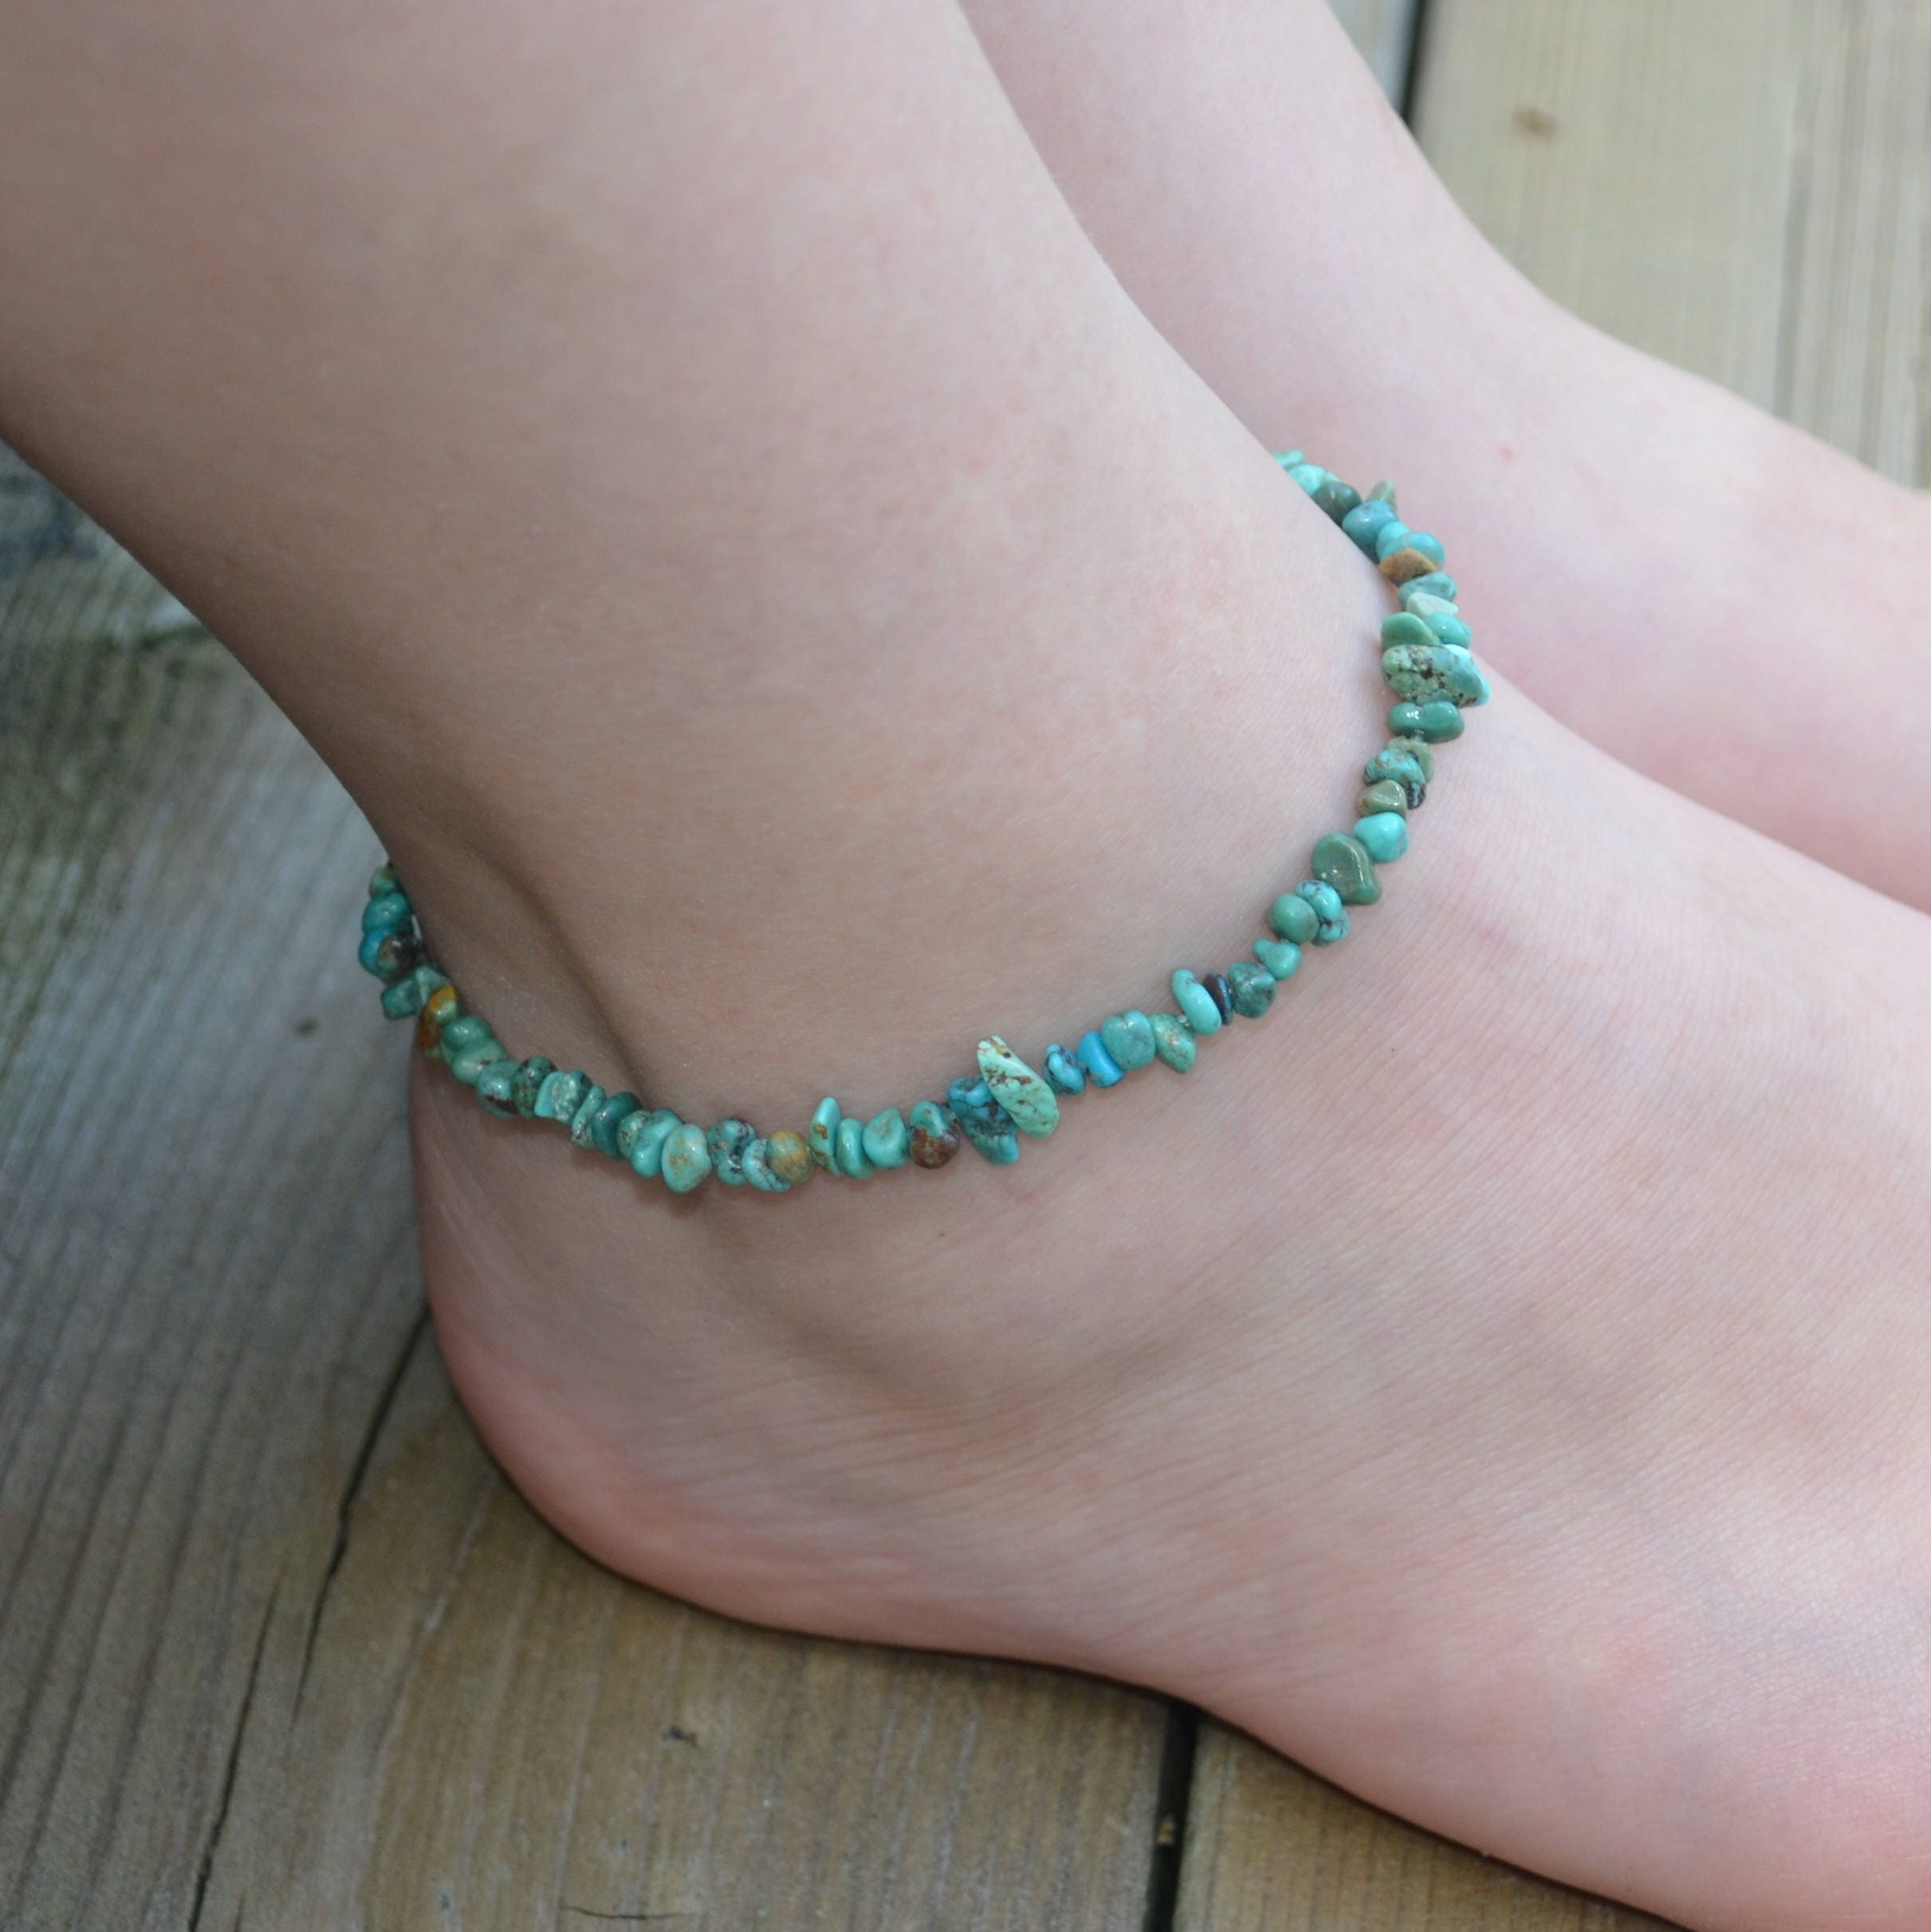 swarovski s mothers mother jewelry personalized bracelet il birthstones sterling silver anklet p or birthstone fullxfull